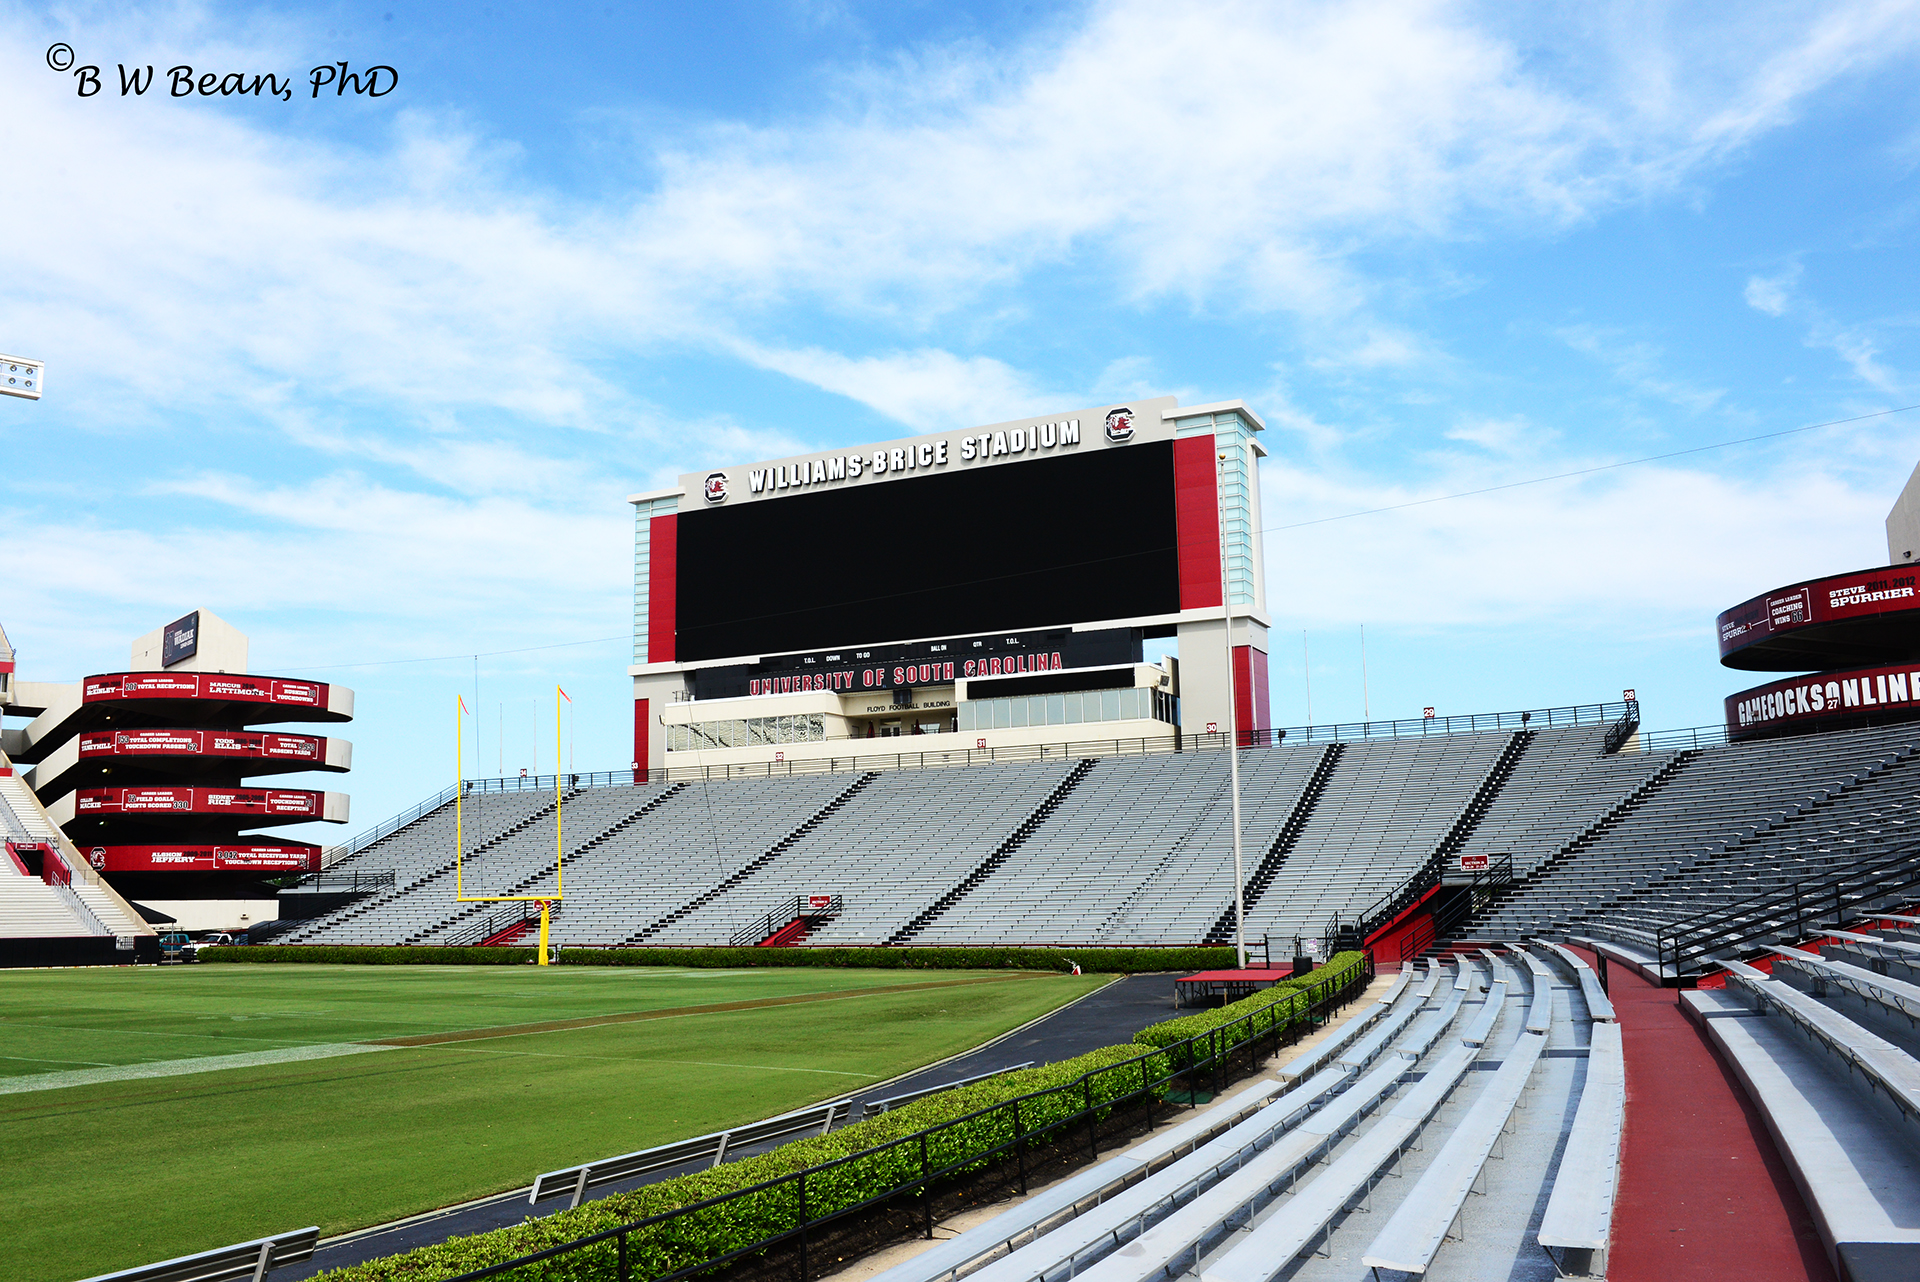 Gamecocks Archives - Travel And Photo TodayTravel And ...